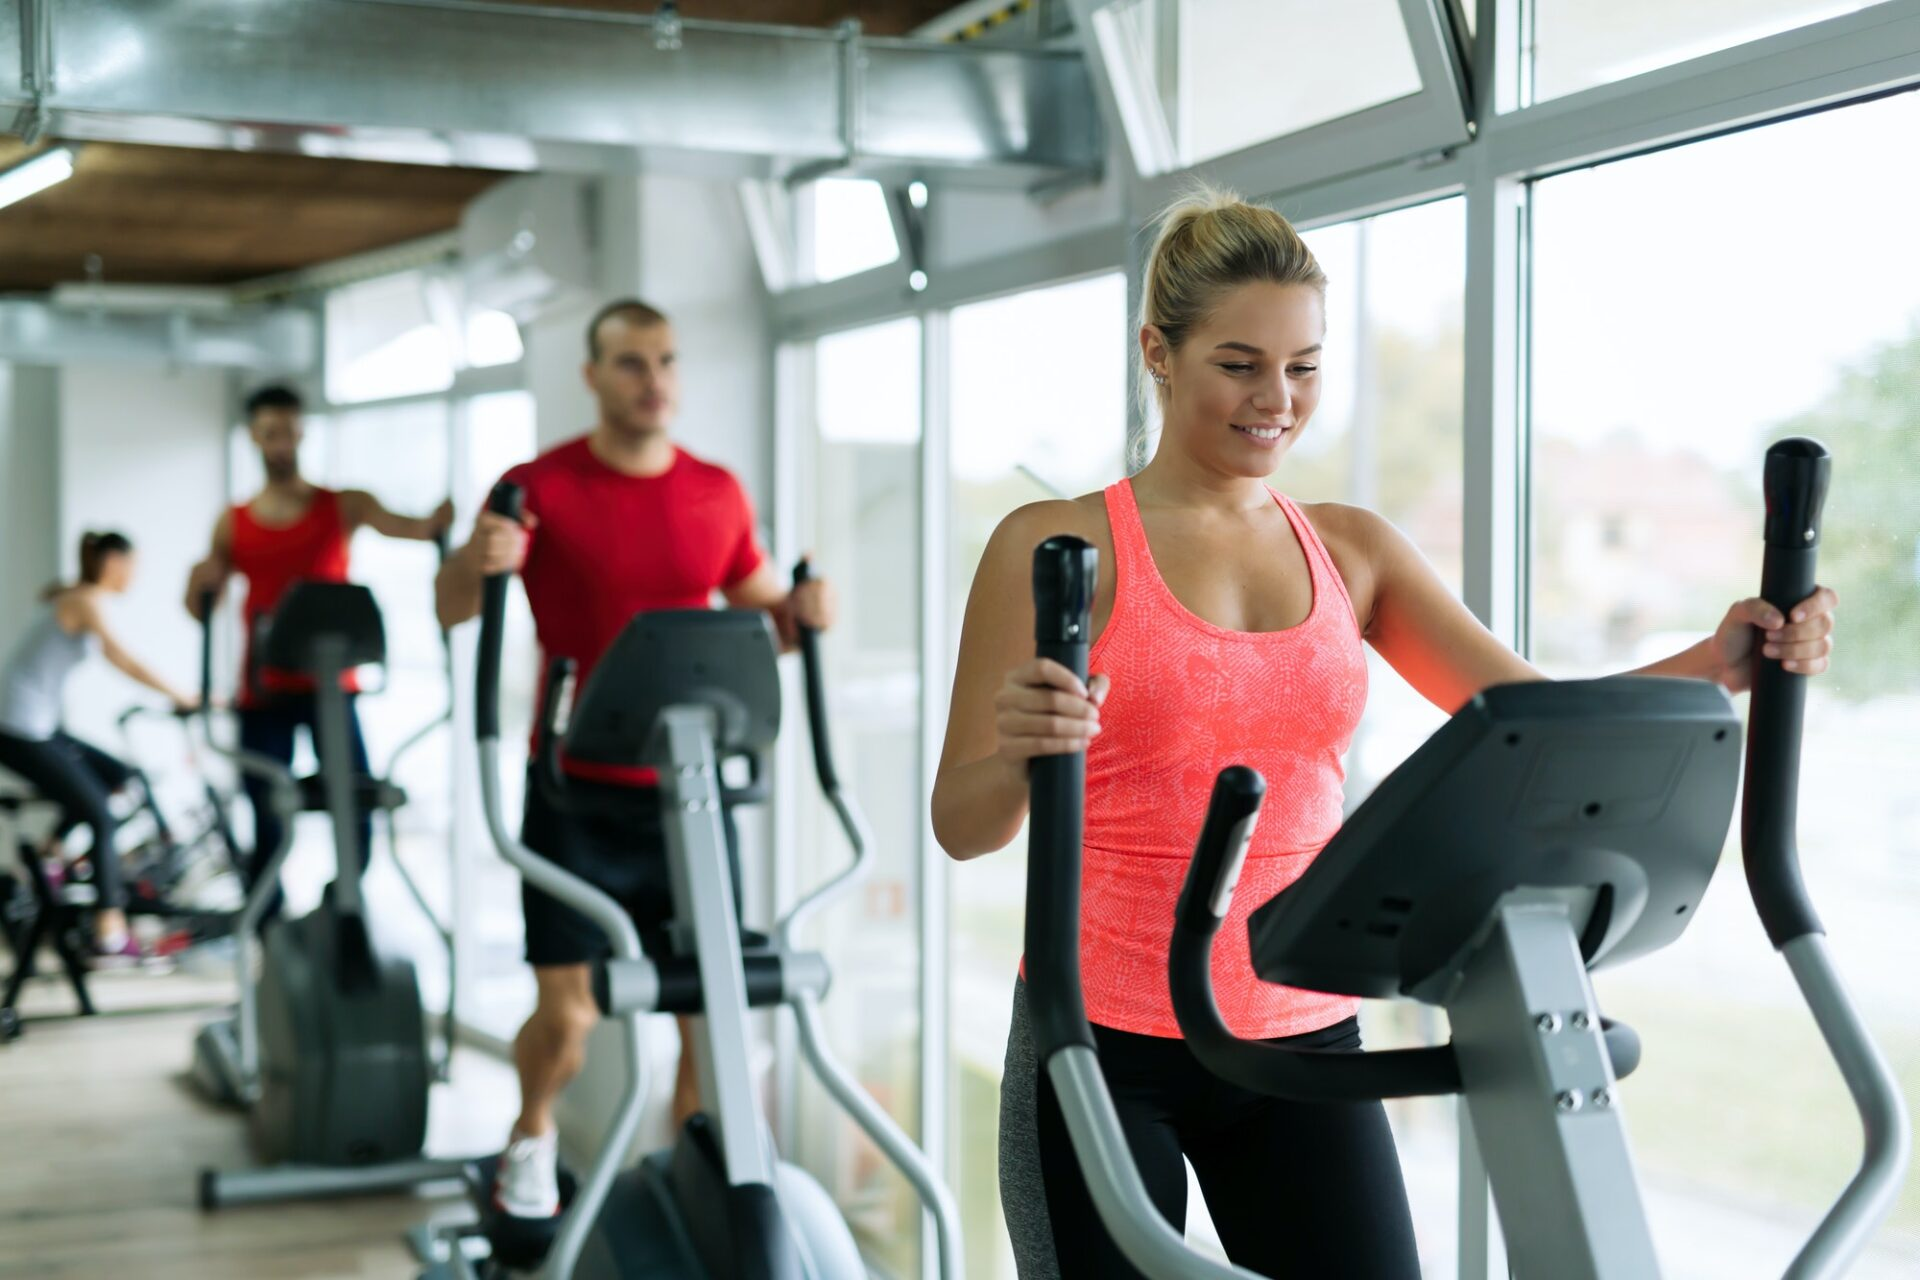 People doing on elliptical trainer in gym